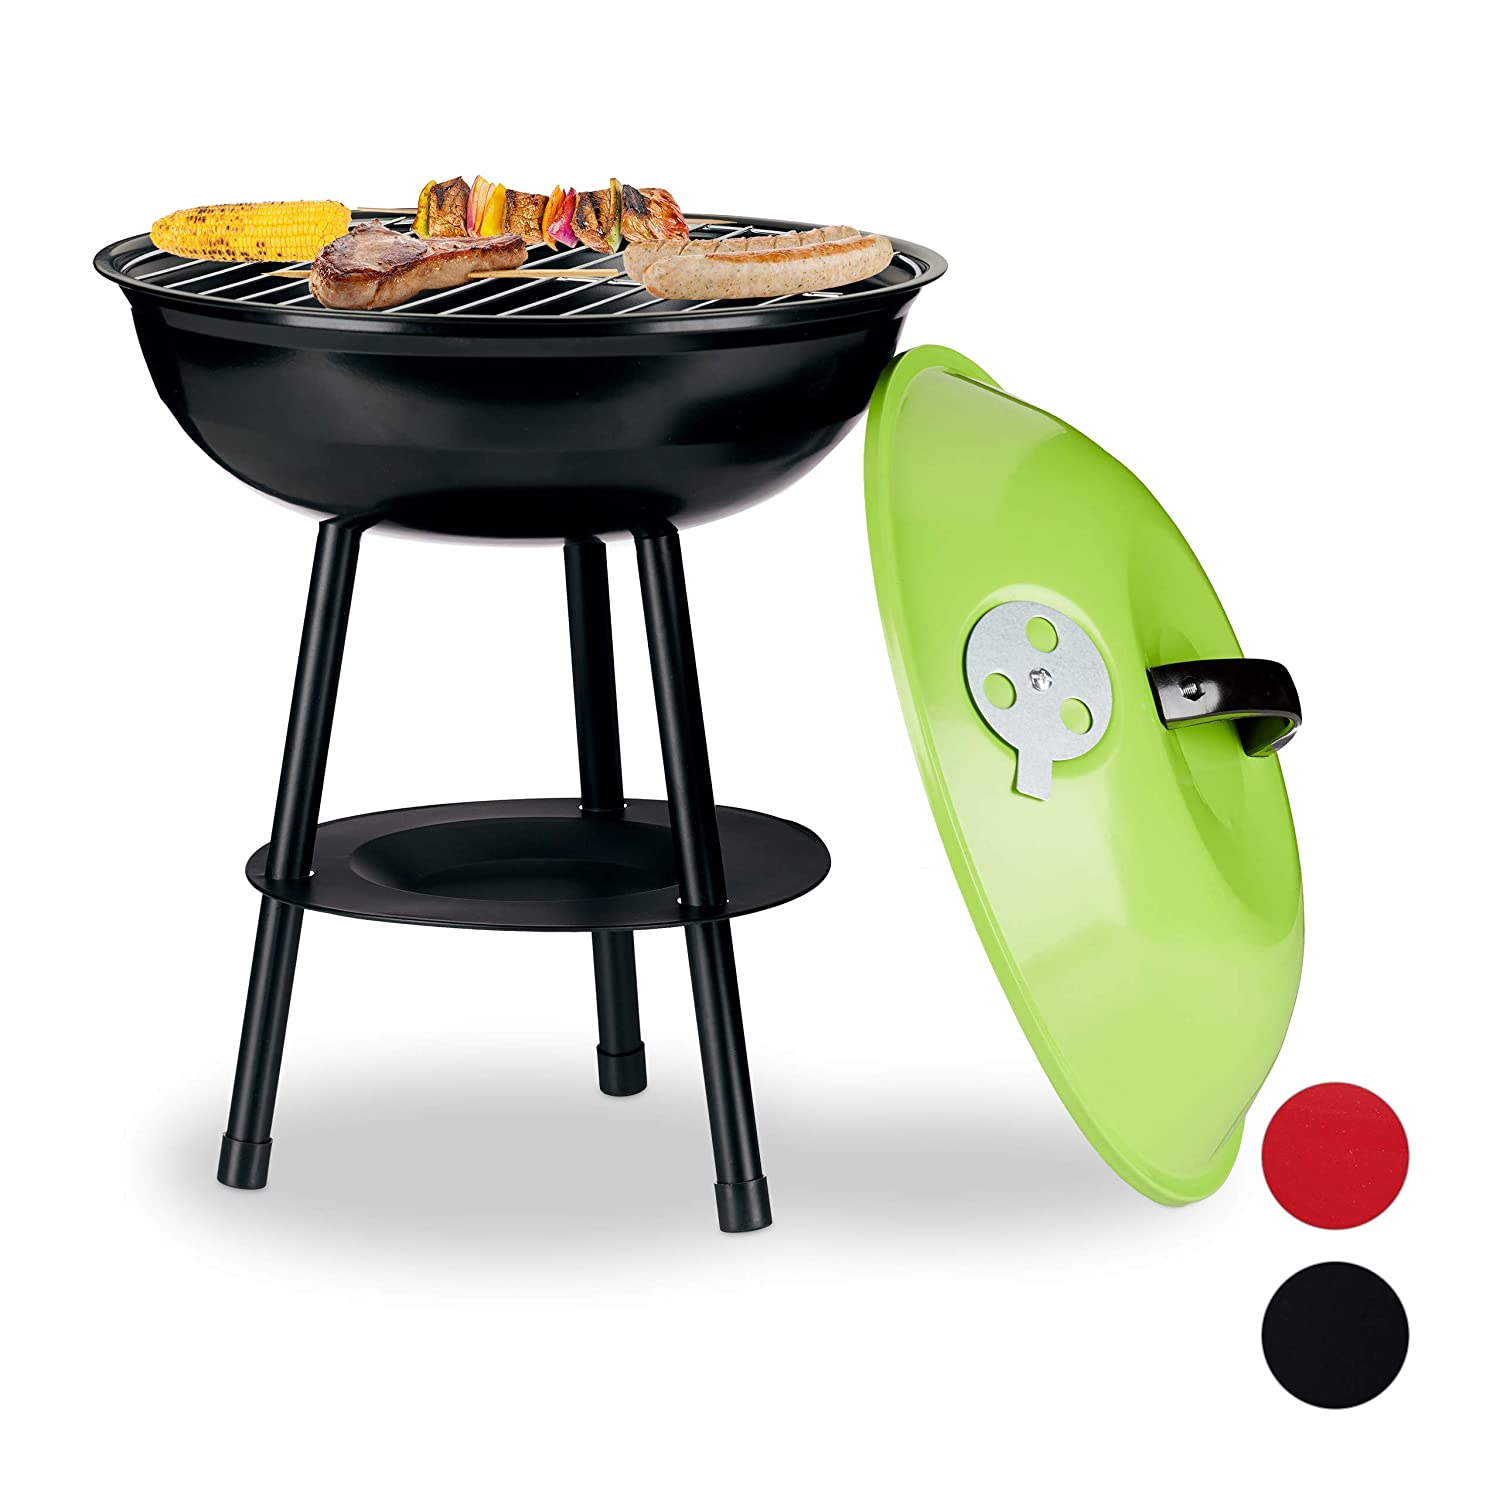 Relaxdays /Ø 36cm Kettle BBQ with Cover and Ventilation Small Charcoal Grill for Garden and Park Ash Tray Black